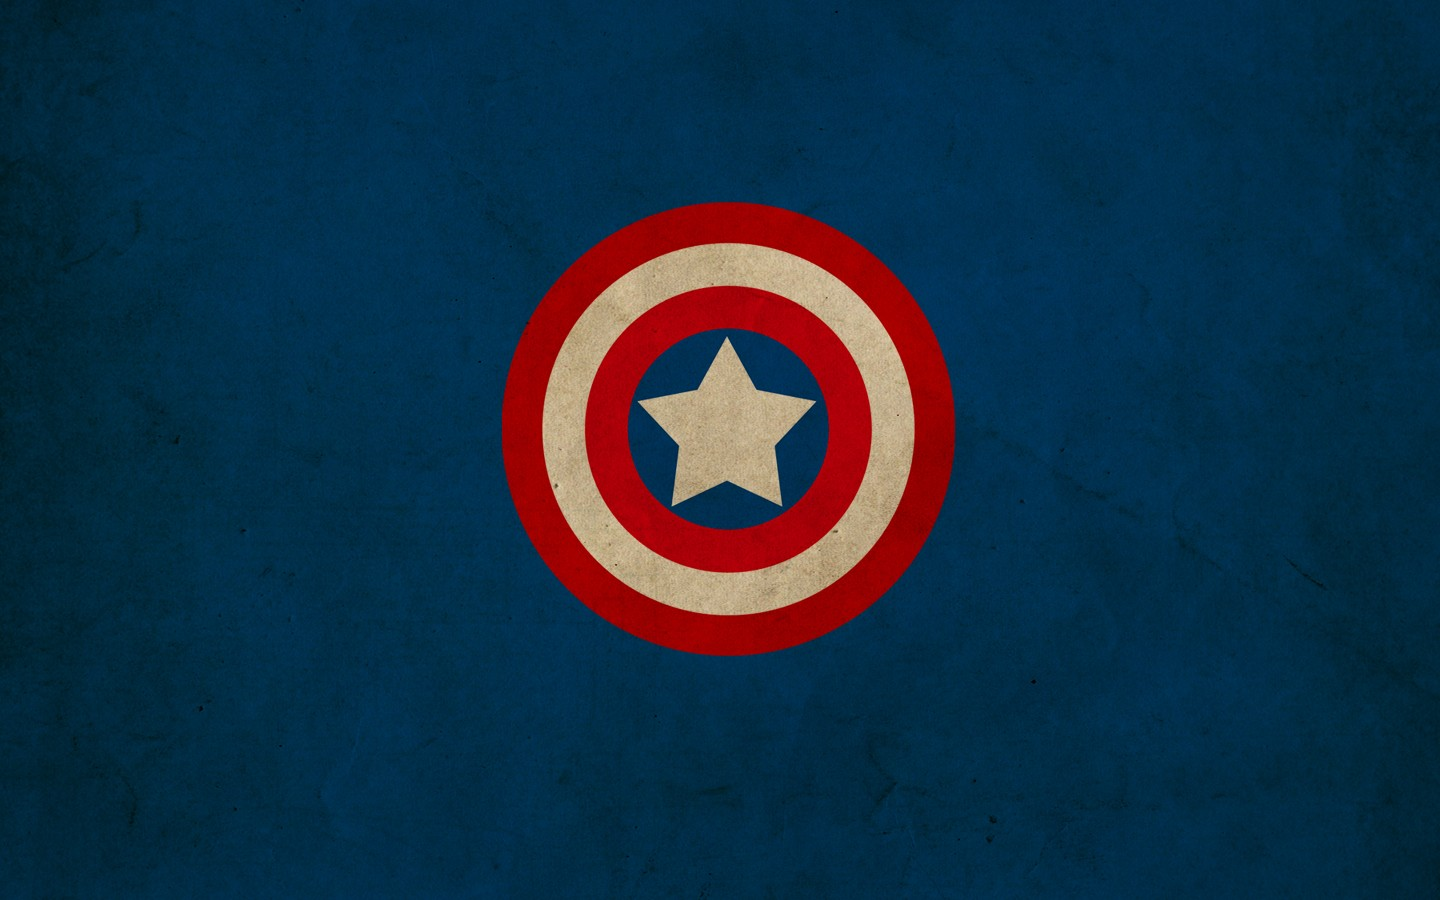 America Shield Marvel Comics Logos Franck Grzyb Wallpaper Background 1440x900